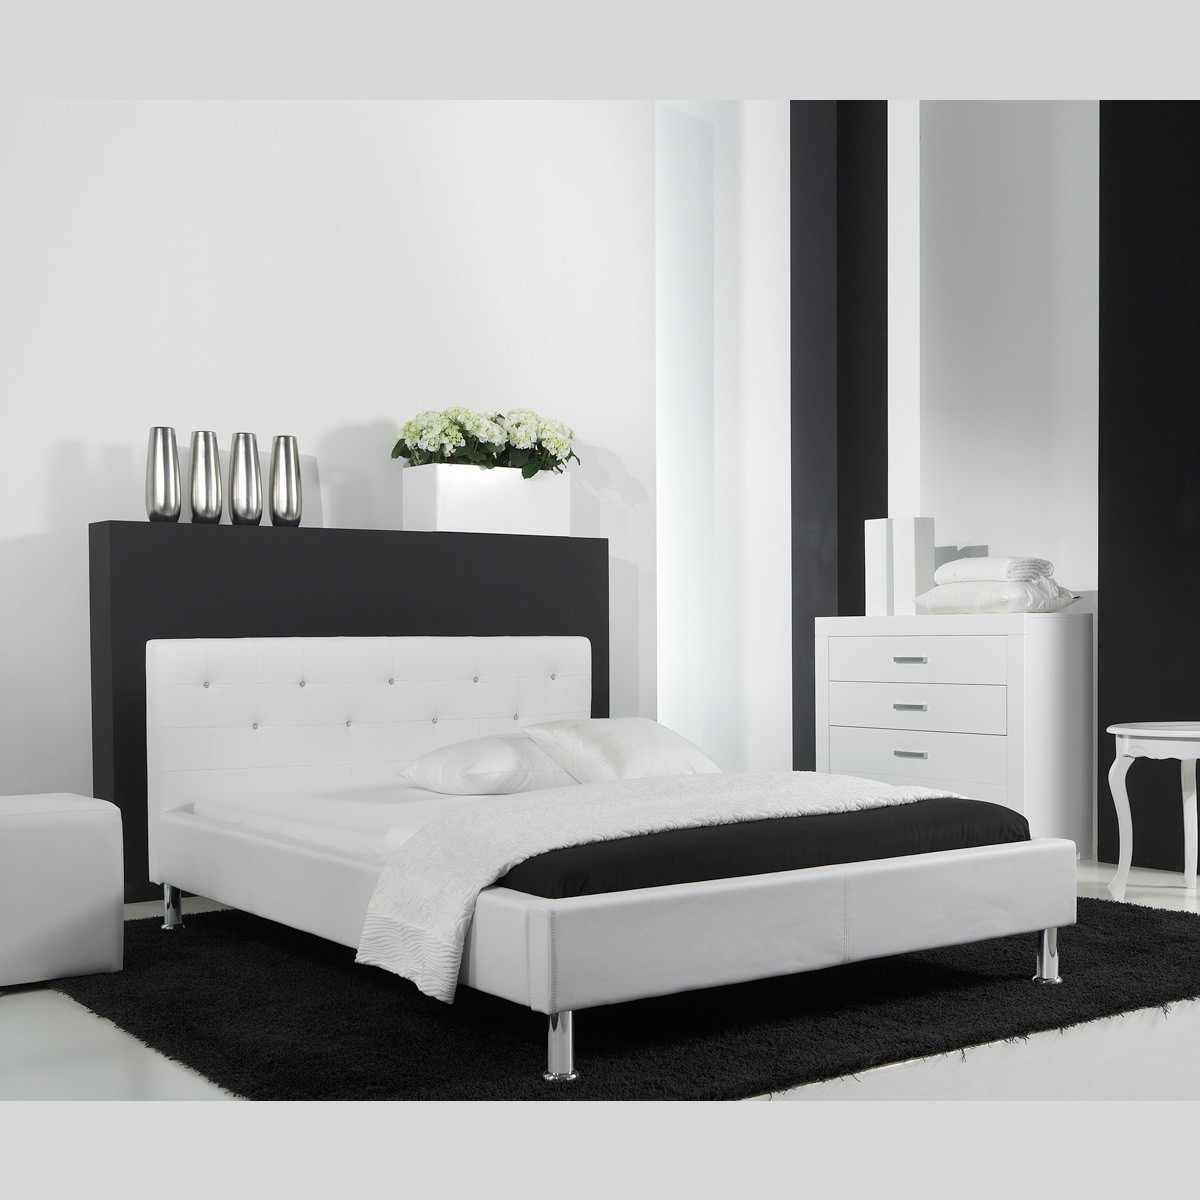 bett mit rost und matratze 140x200 reserviert verkaufe bett mit rost matratze u bettkasten in. Black Bedroom Furniture Sets. Home Design Ideas